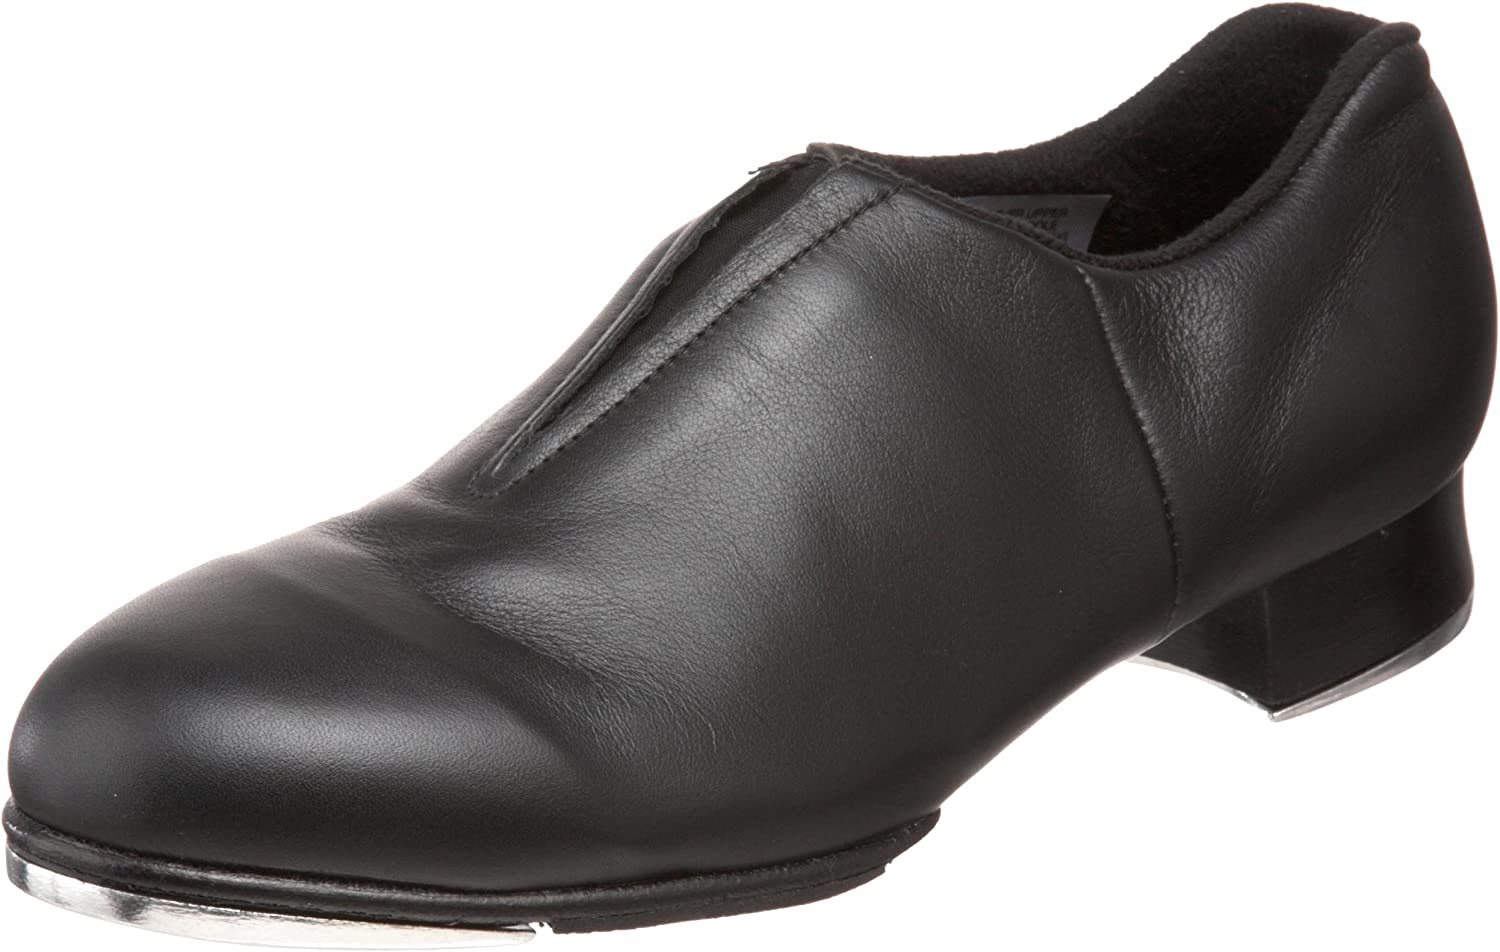 Bloch Dance Women's Tap-Flex Leather Slip On Tap shoes